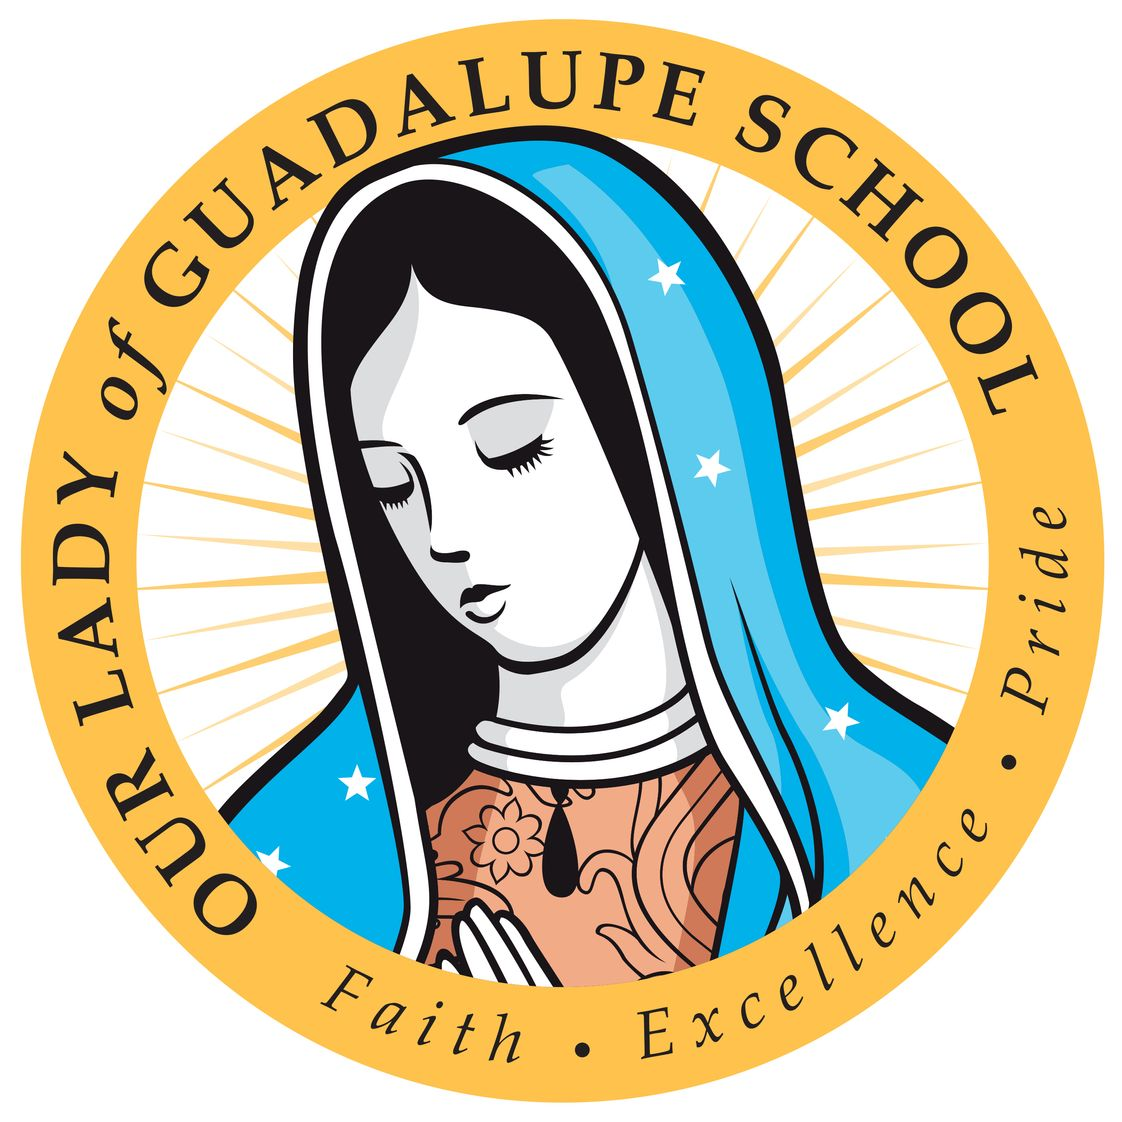 Our Lady Of Guadalupe School Photo - The Pride of South Chicago!